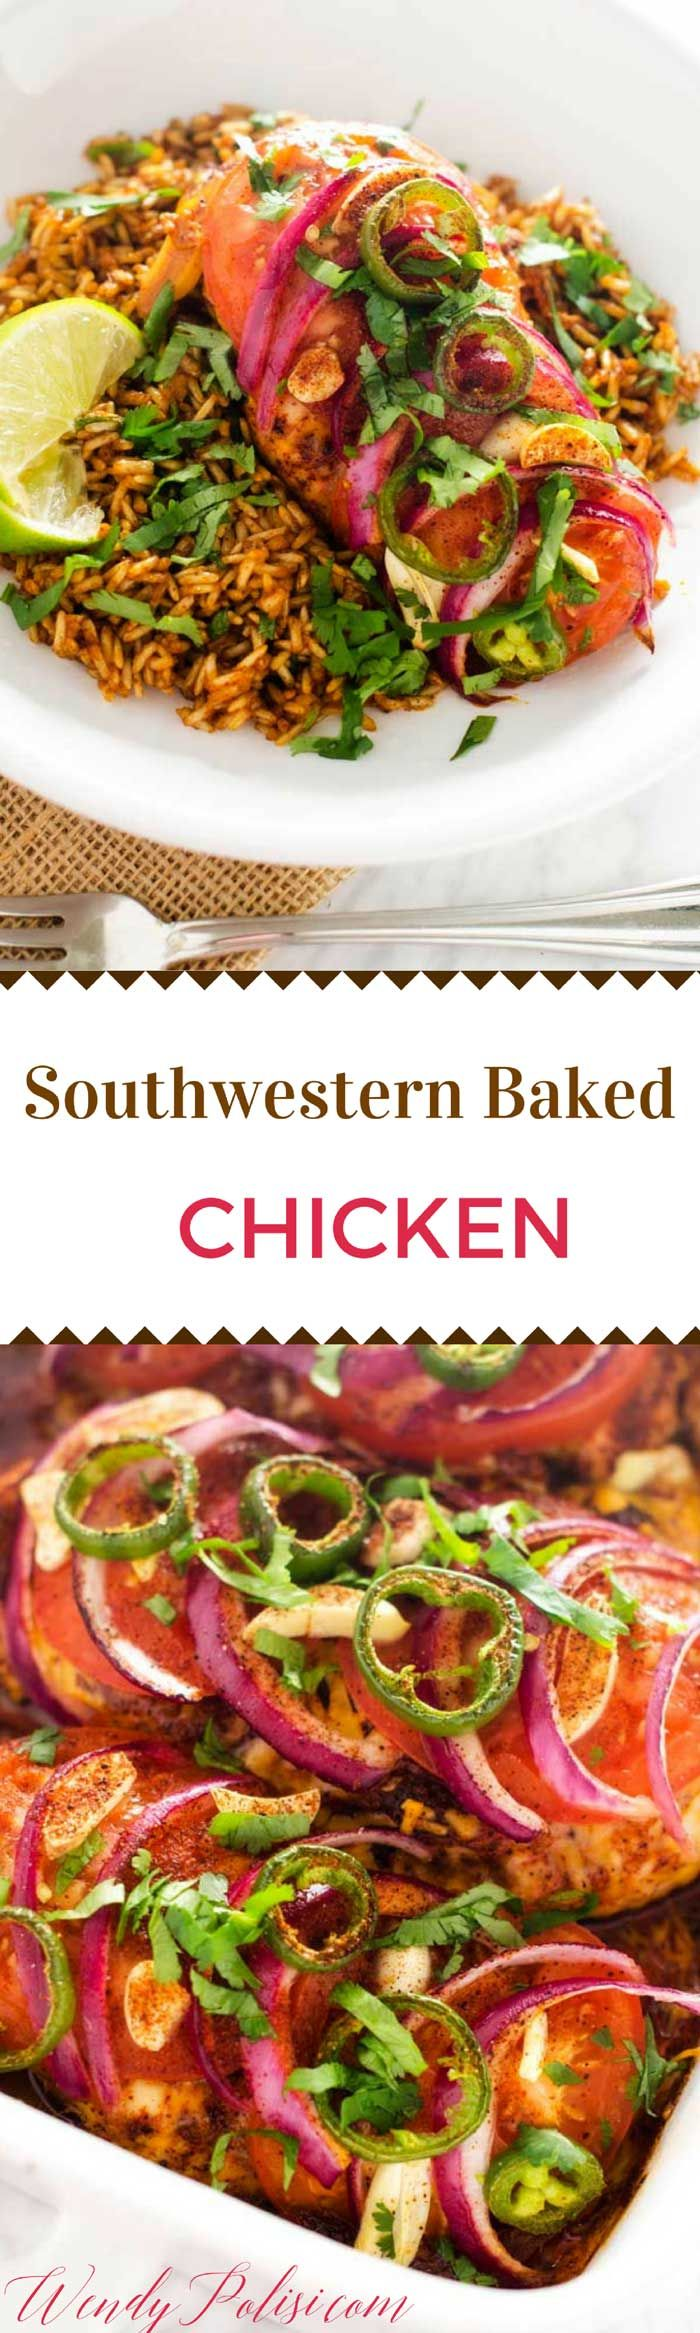 This Southwestern Baked Chicken is a delicious and healthy dinner recipe.  It is easy to make-ahead so that dinner is ready to pop in the oven at the end of a busy day. via @wendypolisi